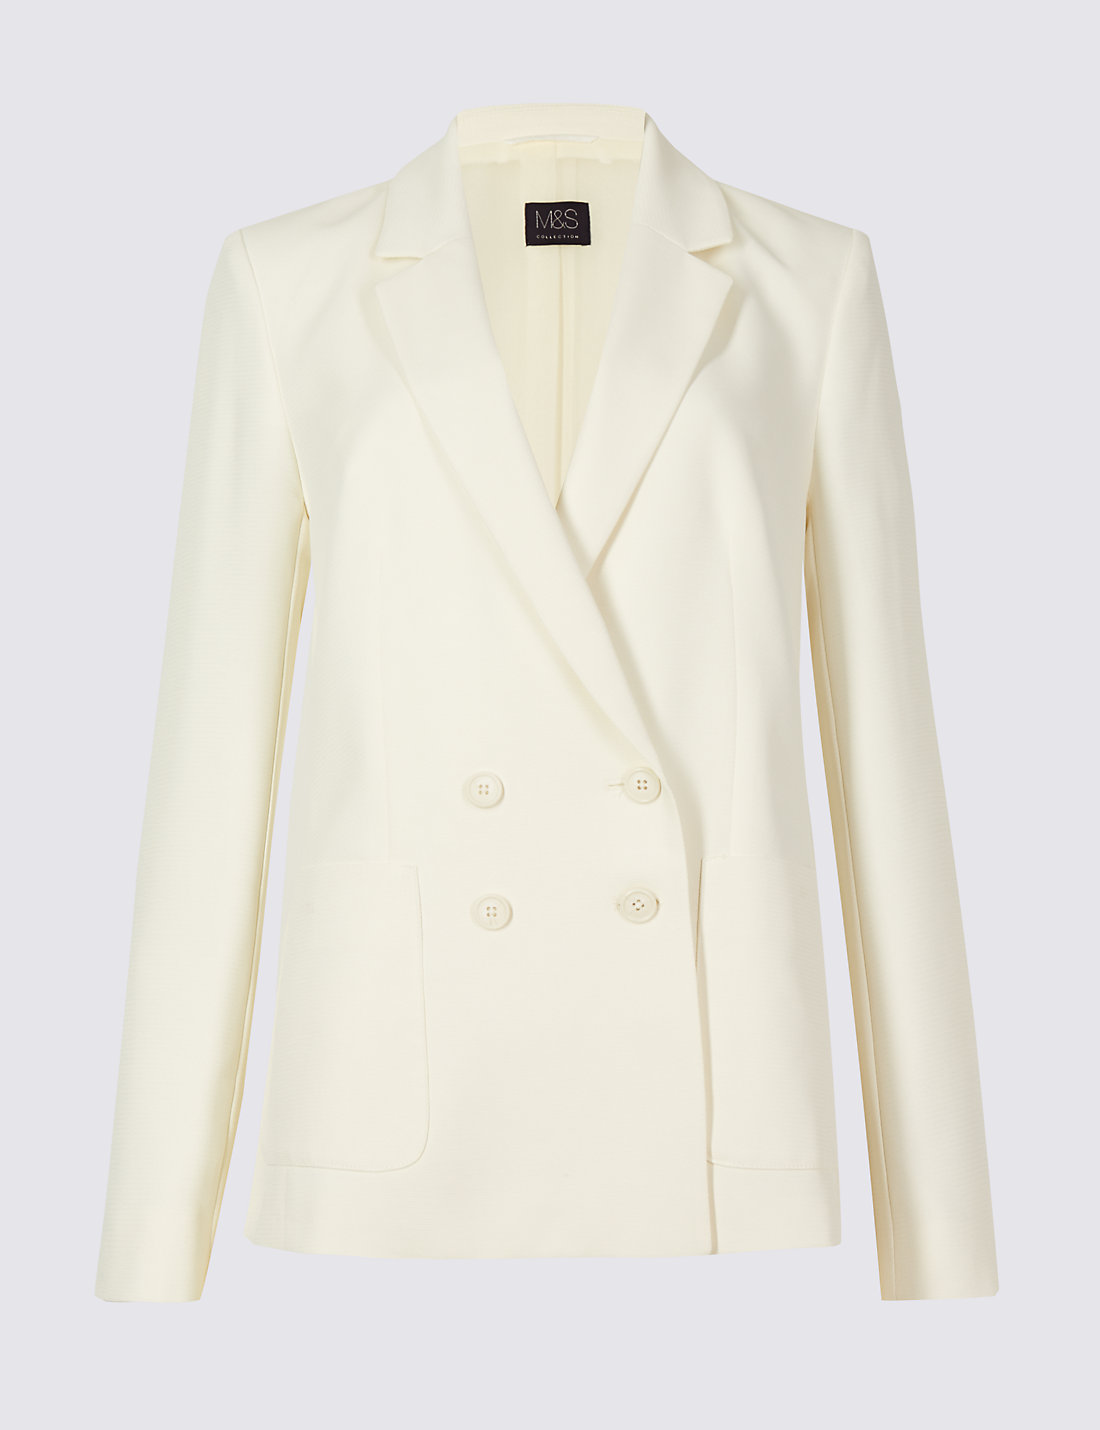 M&S double breasted jacket